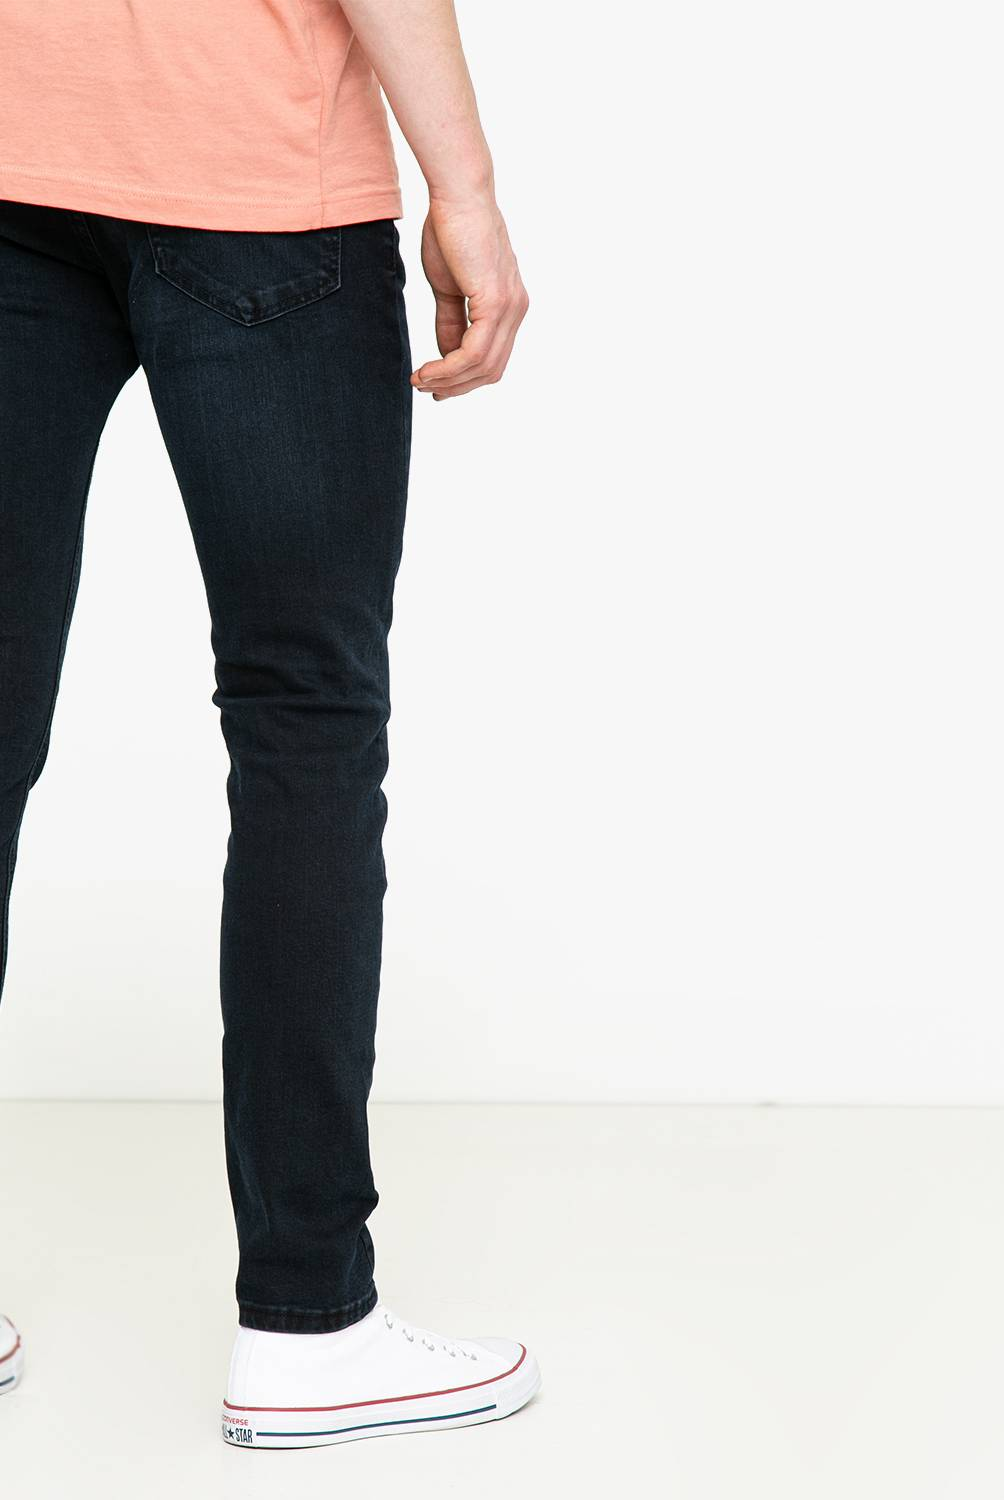 Americanino - Jeans Casual Regular Fit